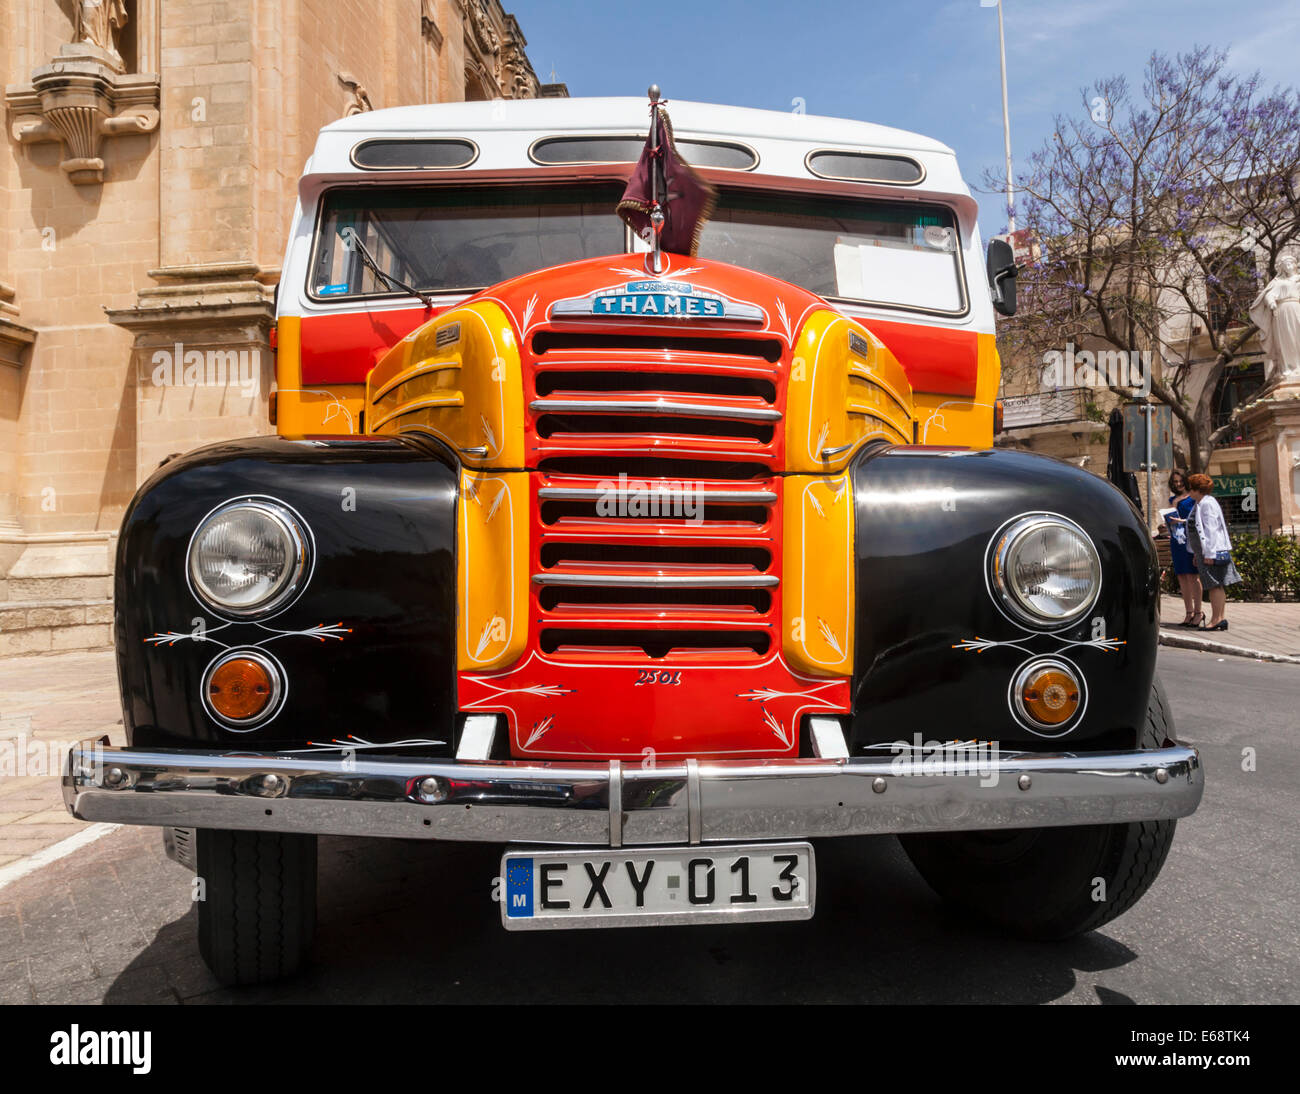 One of Malta's old buses (Fordson Thames coach) no longer used as public transport  but there are still some - Stock Image